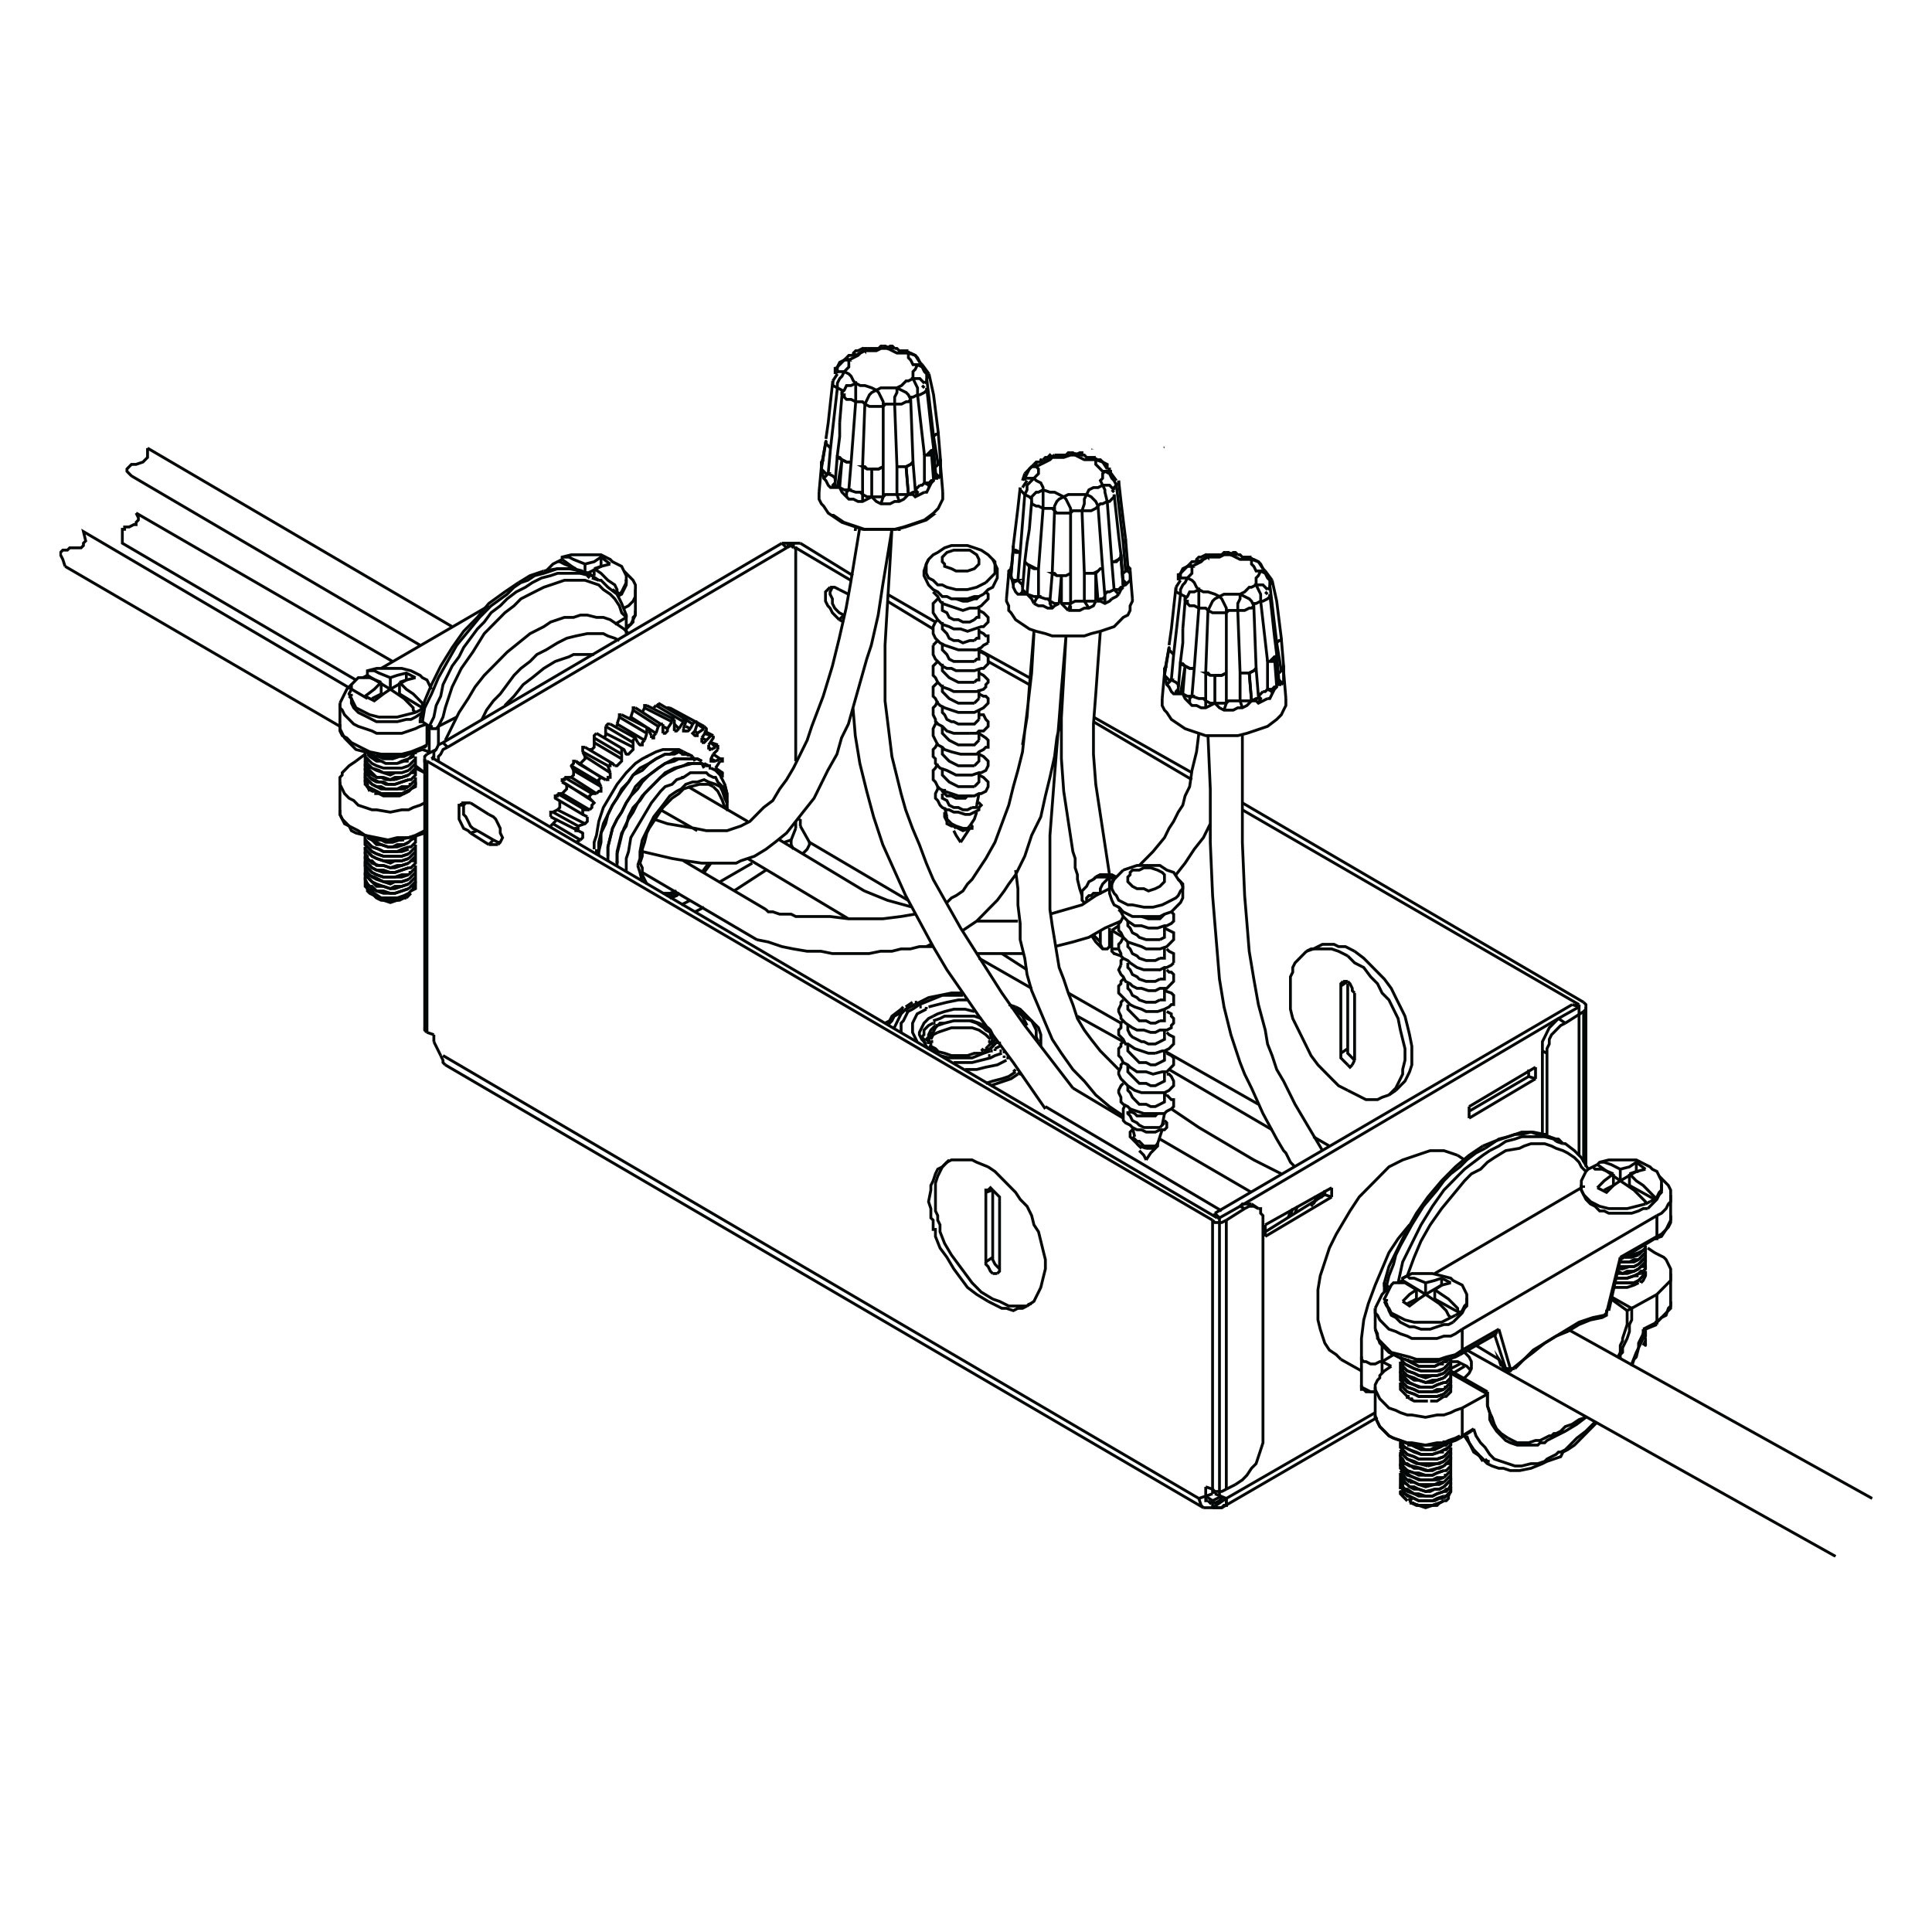 Fencer Connector Cables Links